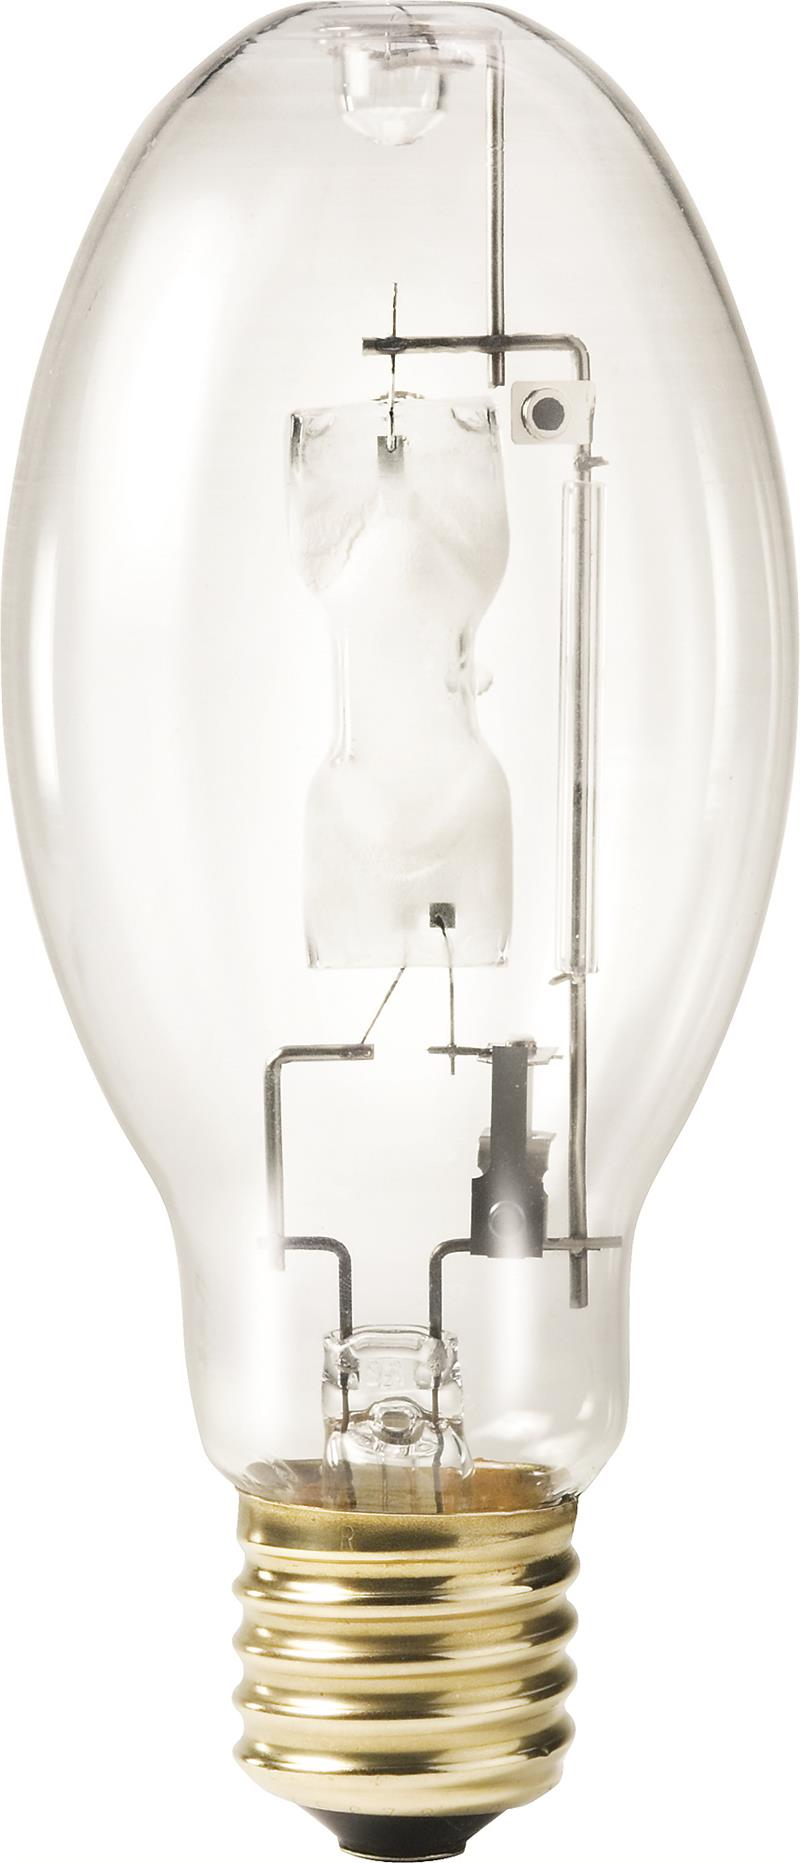 Battery Powered Light Bulb Replacement